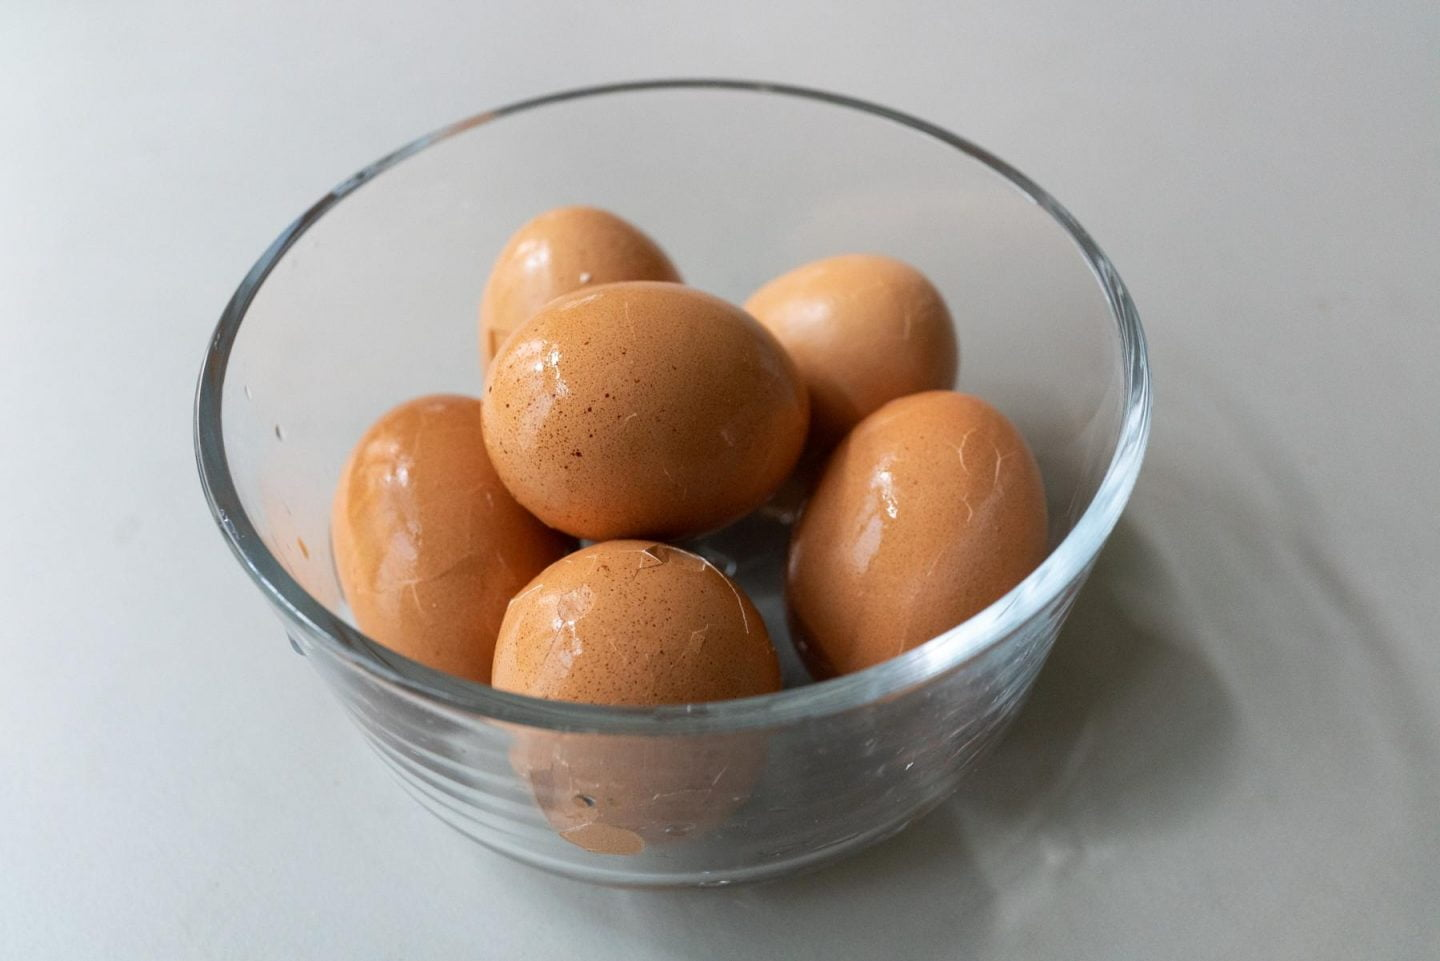 Gently cracking the shells of the boiled eggs before marinating